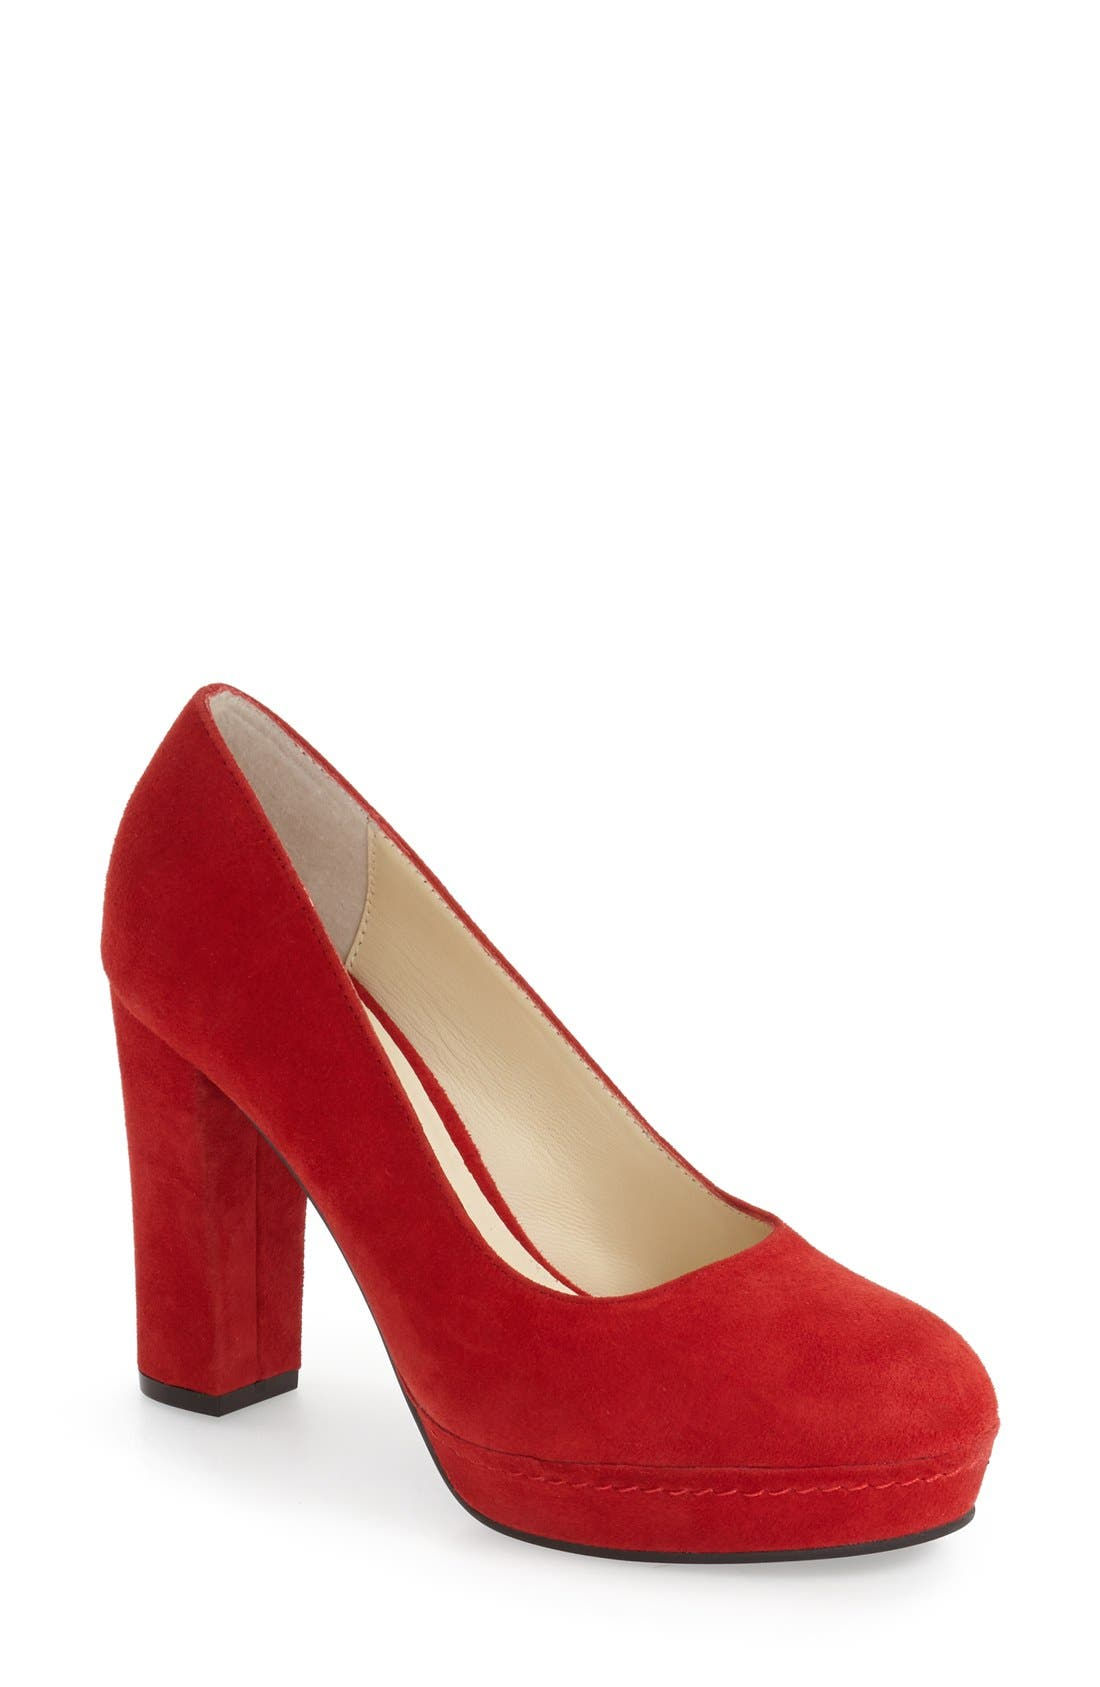 Alternate Image 1 Selected - Bettye Muller 'Moon' Platform Pump (Women)